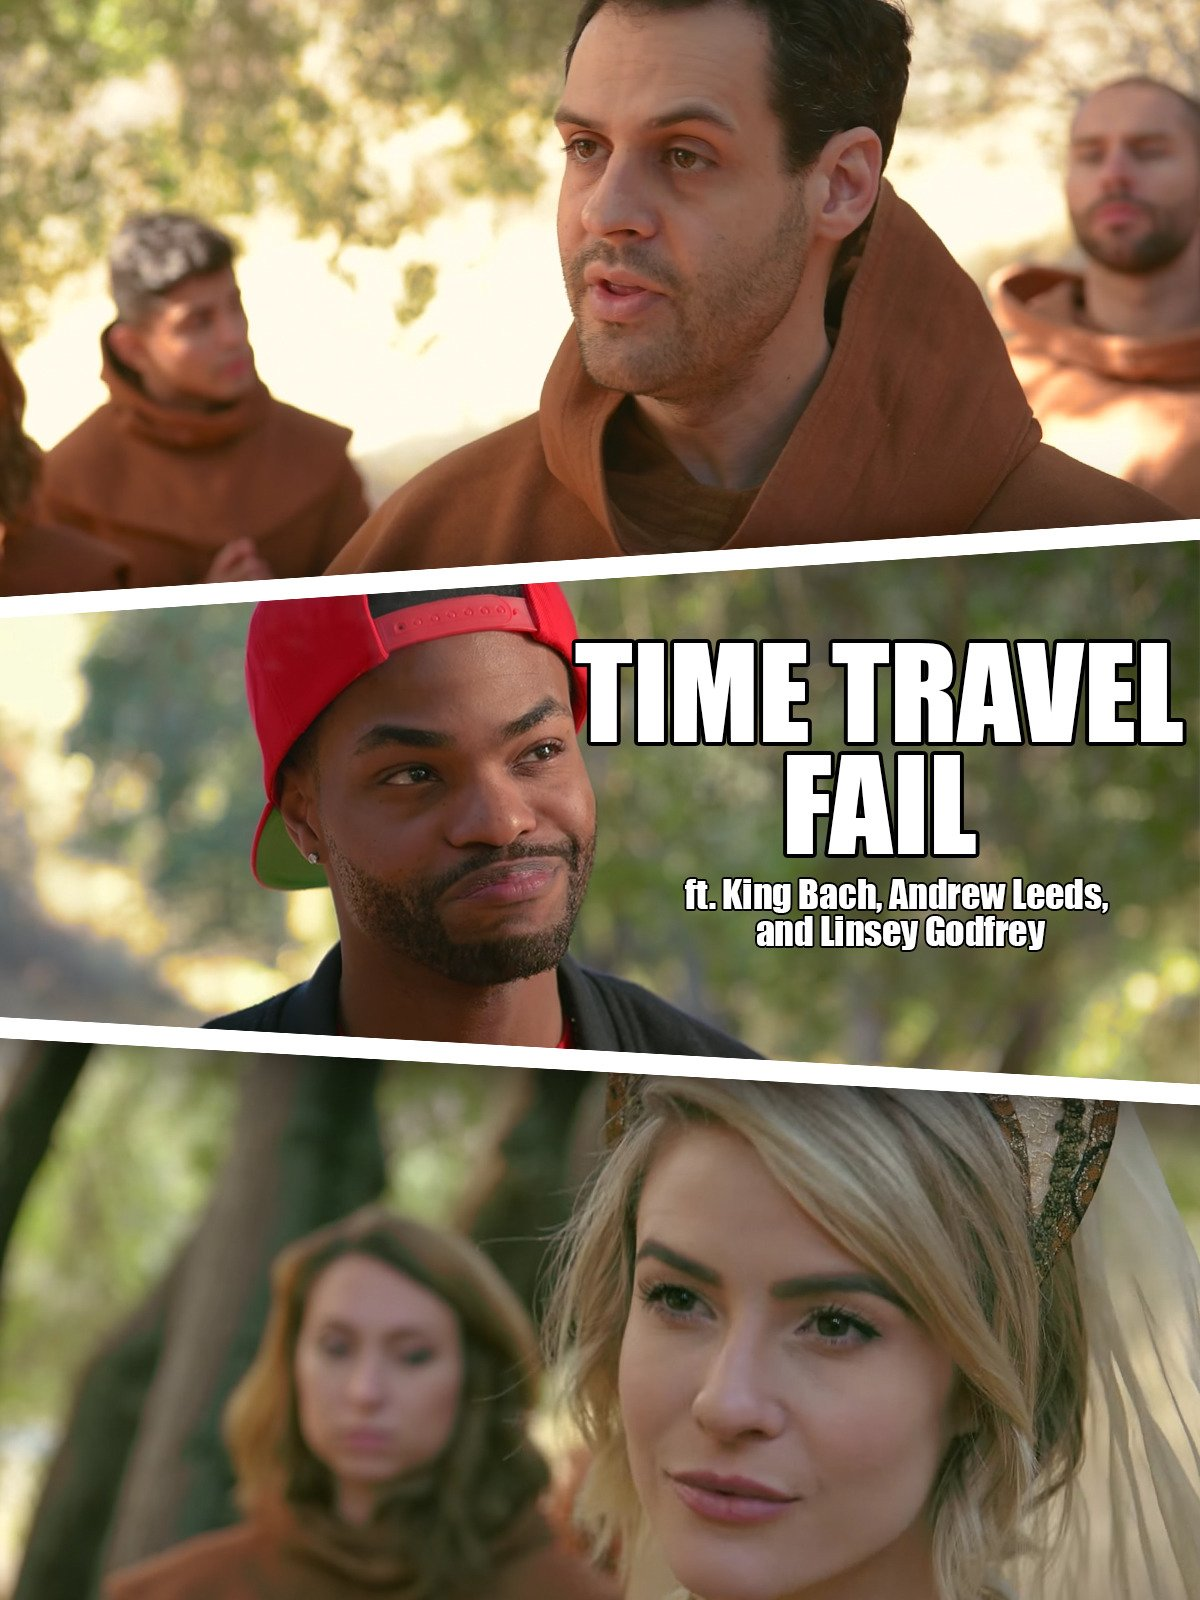 Time Travel Fail ft. King Bach, Andrew Leeds and Linsey Godfrey